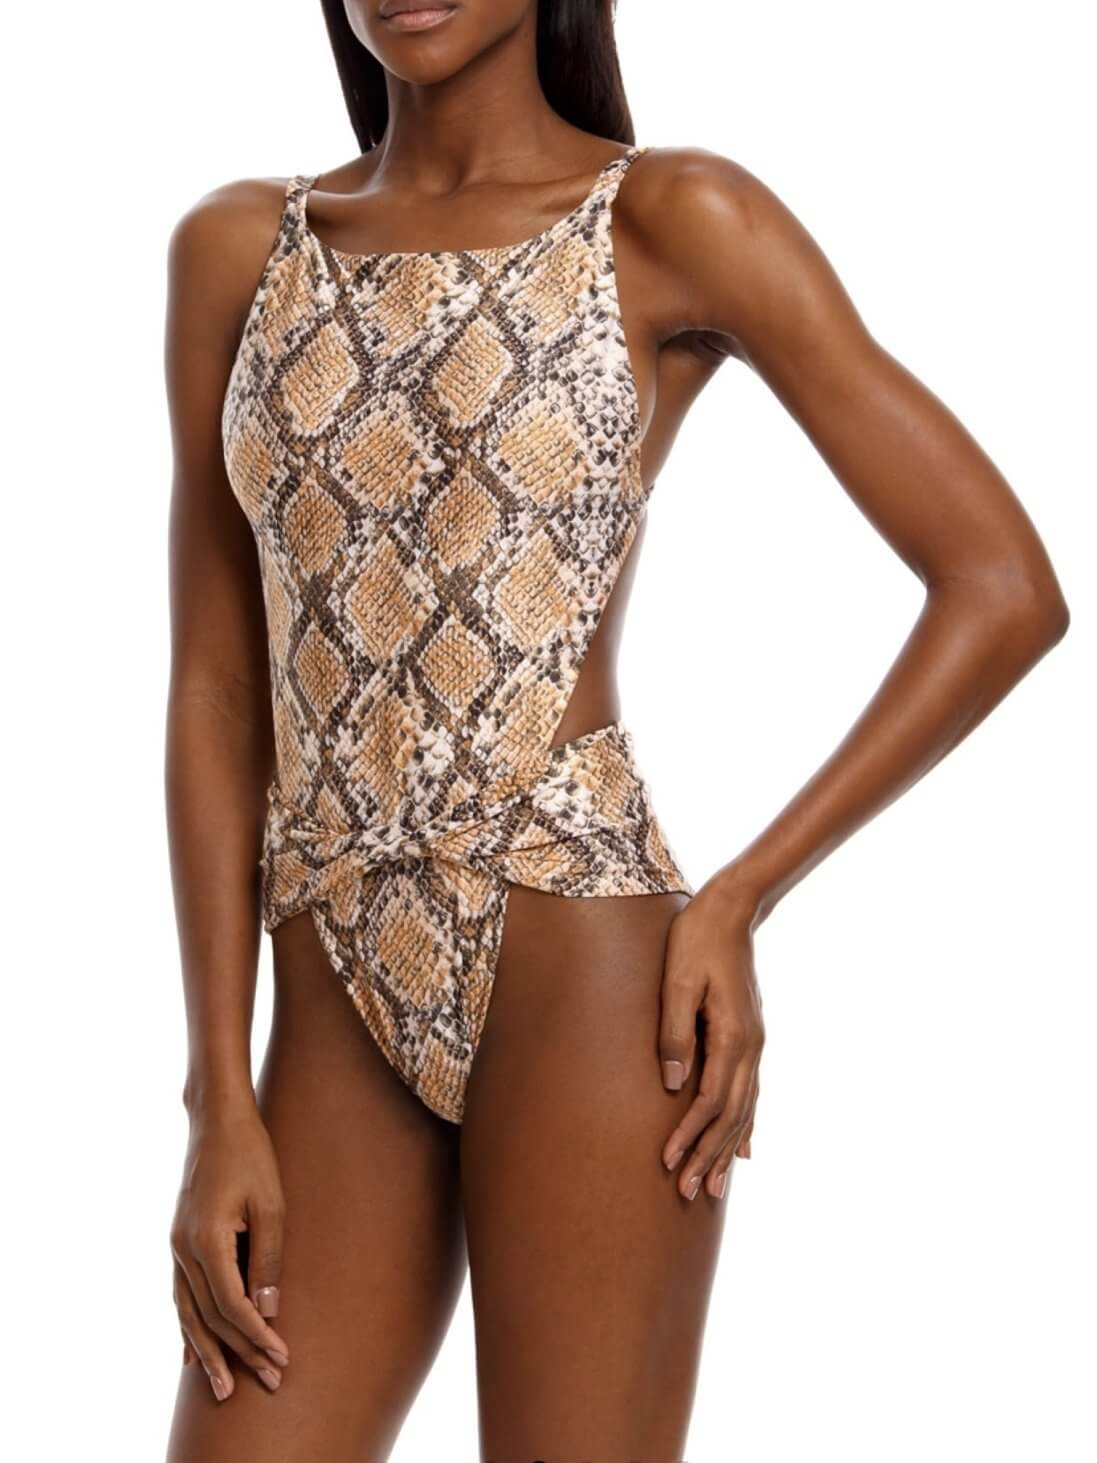 Agua Bendita Bronzo Angela swimsuit in snakeskin fabric with knot detail on the front